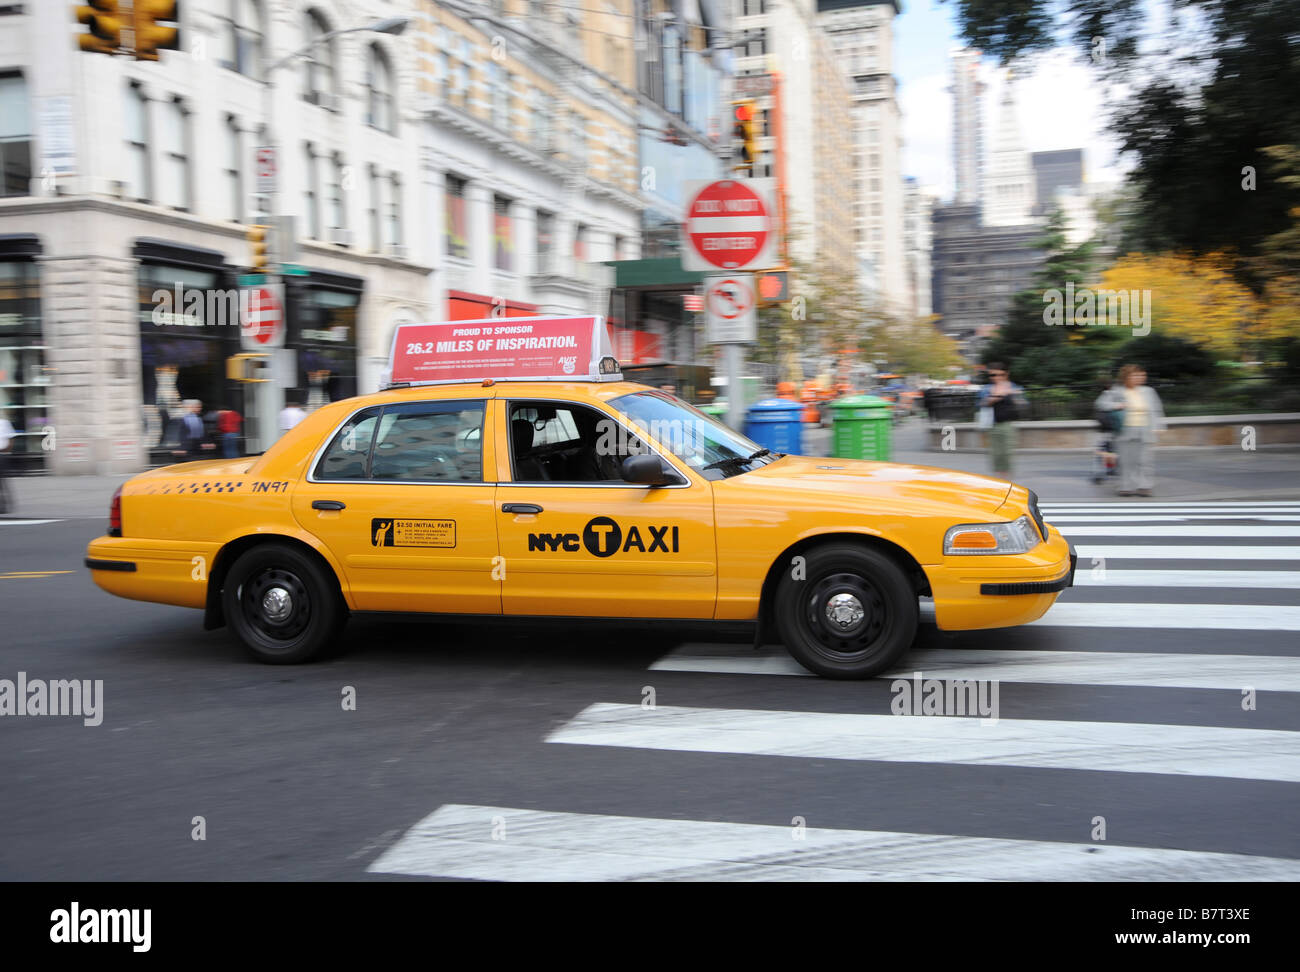 New York City Yellow Taxi Cab Action Ford Crown Victoria Car Stock